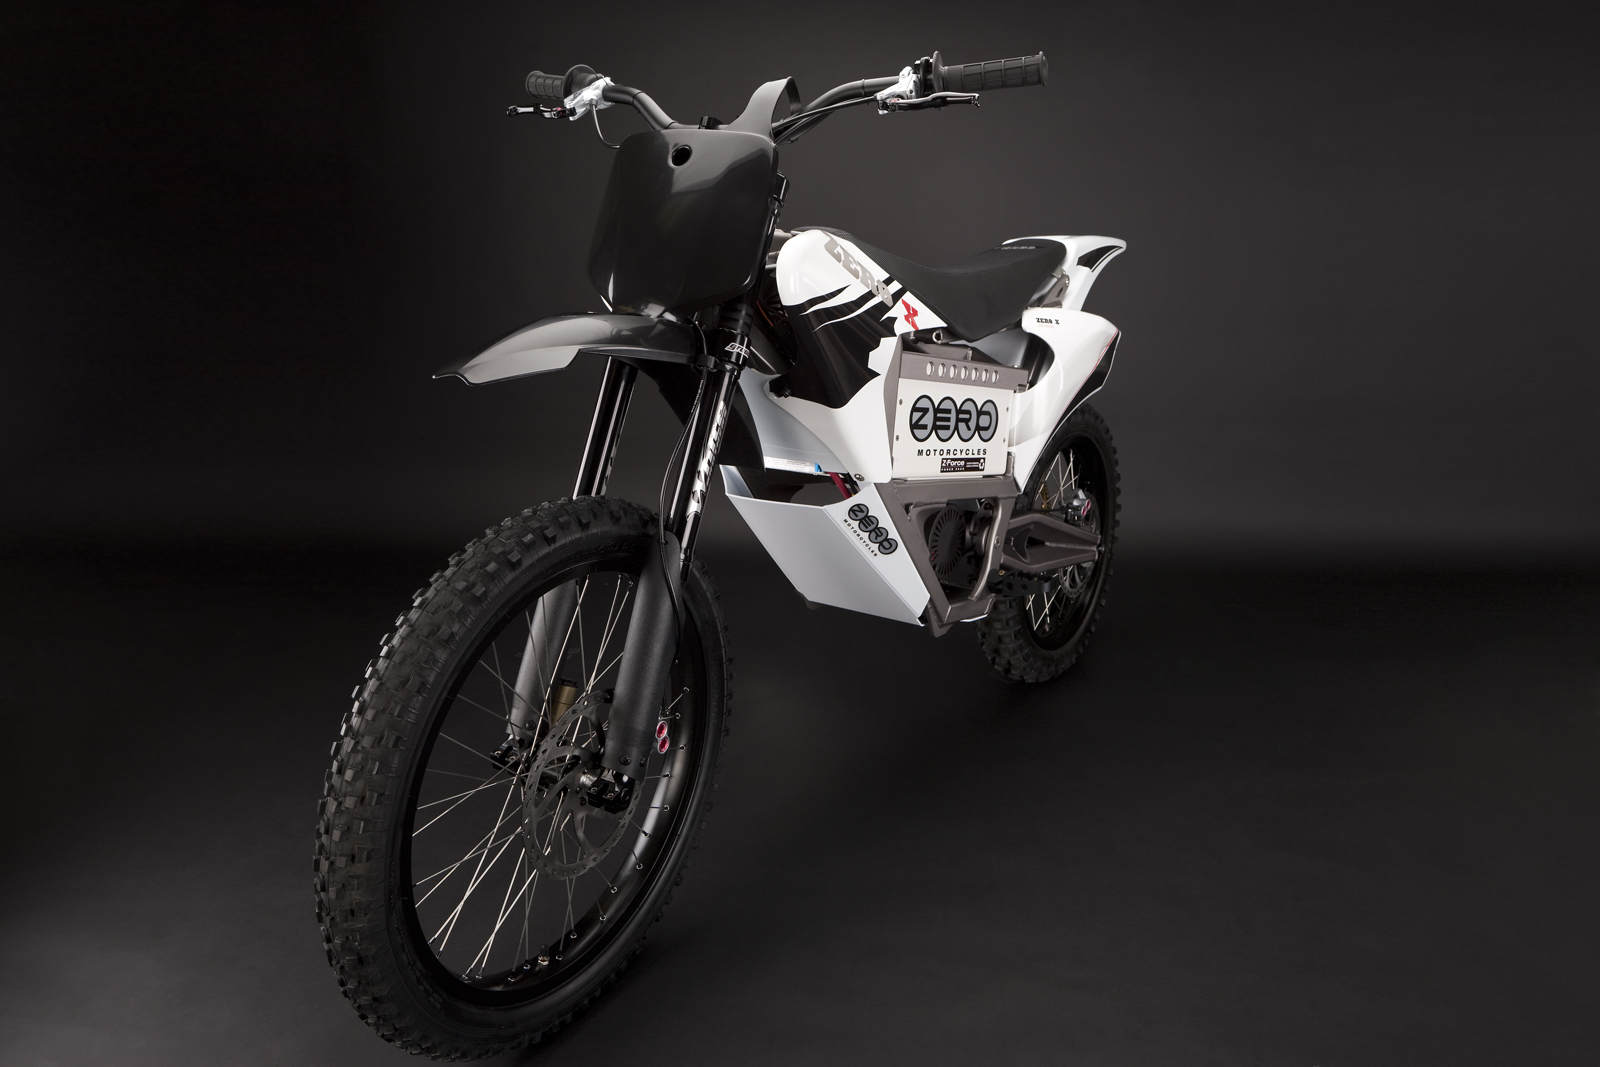 2010 Zero X Electric Motorcycle: Front Fork